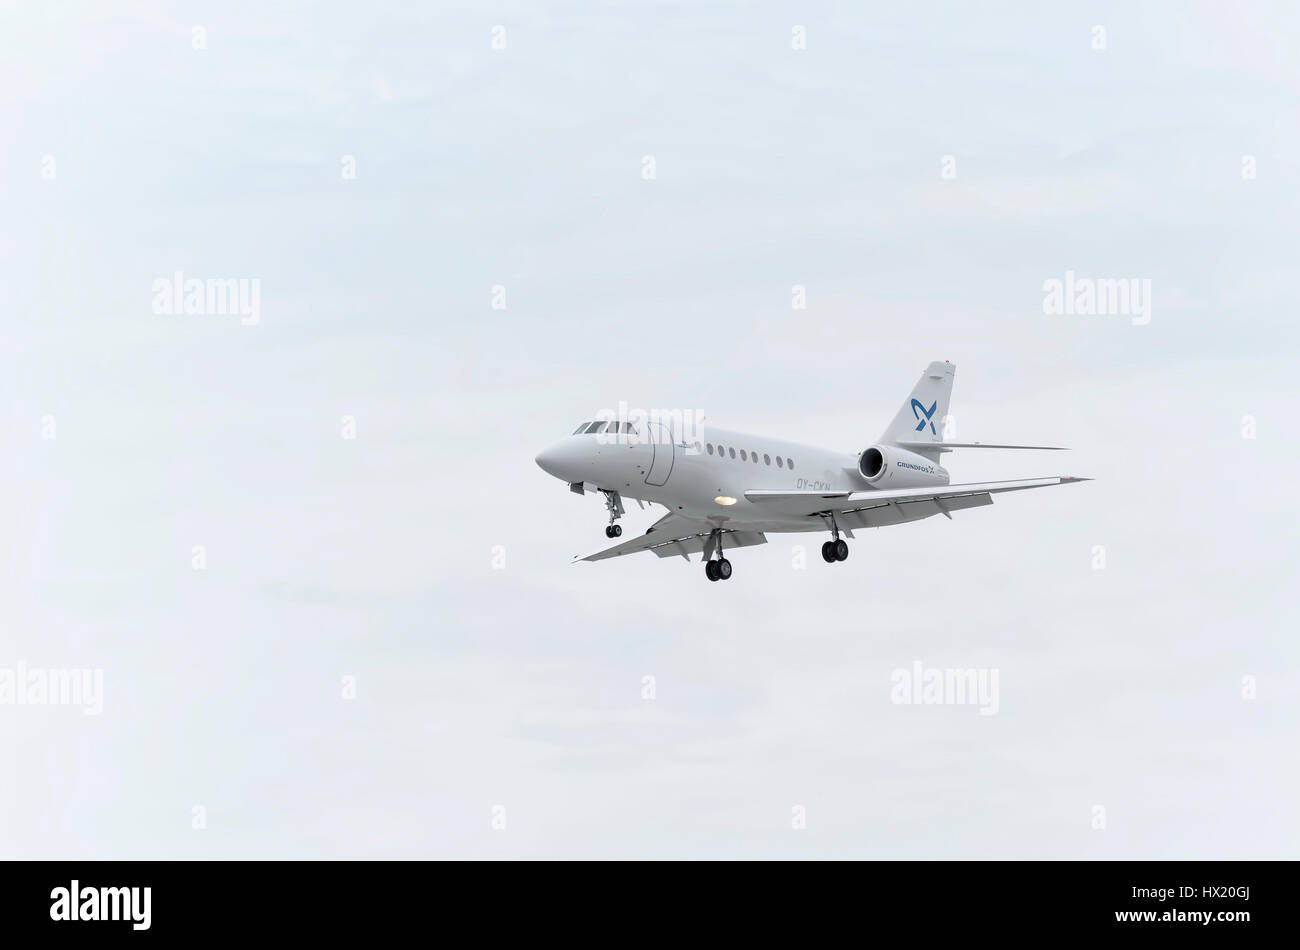 Business jet Dassault Falcon 2000, of Air Alsie charter airline, is landing on Madrid - Barajas, Adolfo Suarez airport. - Stock Image